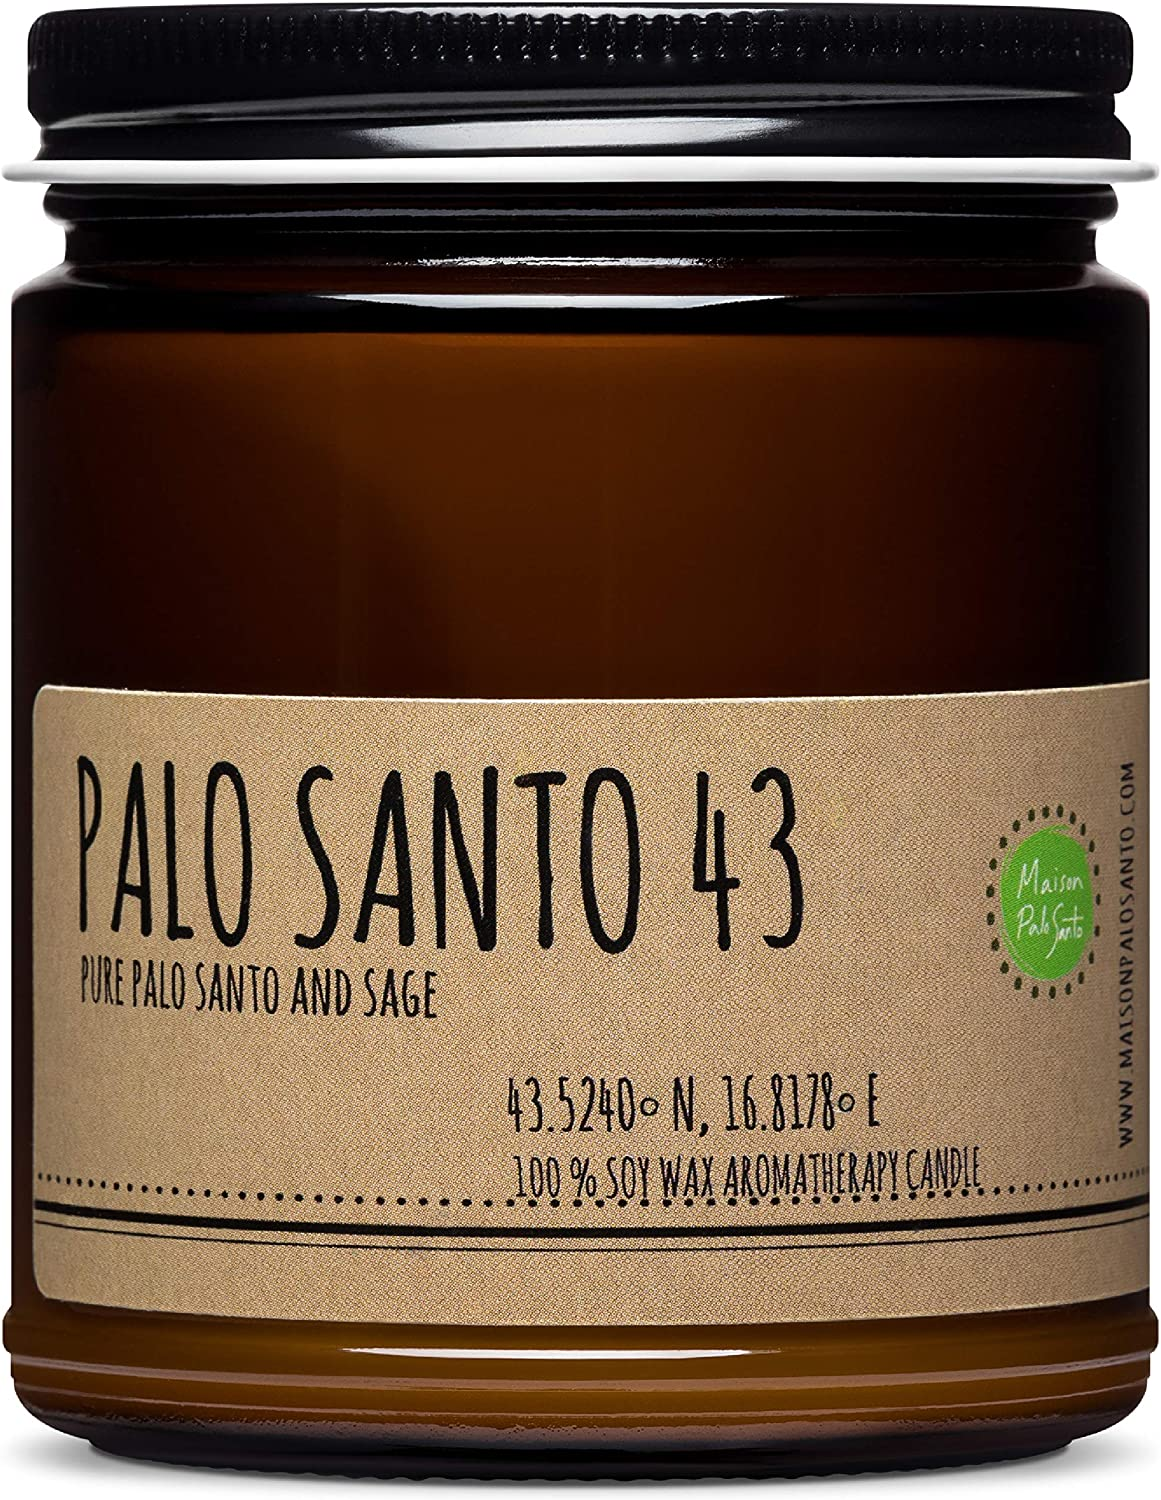 Maison Palo Santo Soy Wax Candle - Palo Santo and Sage Natural Scented Candle for Aromatherapy, Negative Energy Cleansing, Chakra Balancing and Meditation, 9 oz